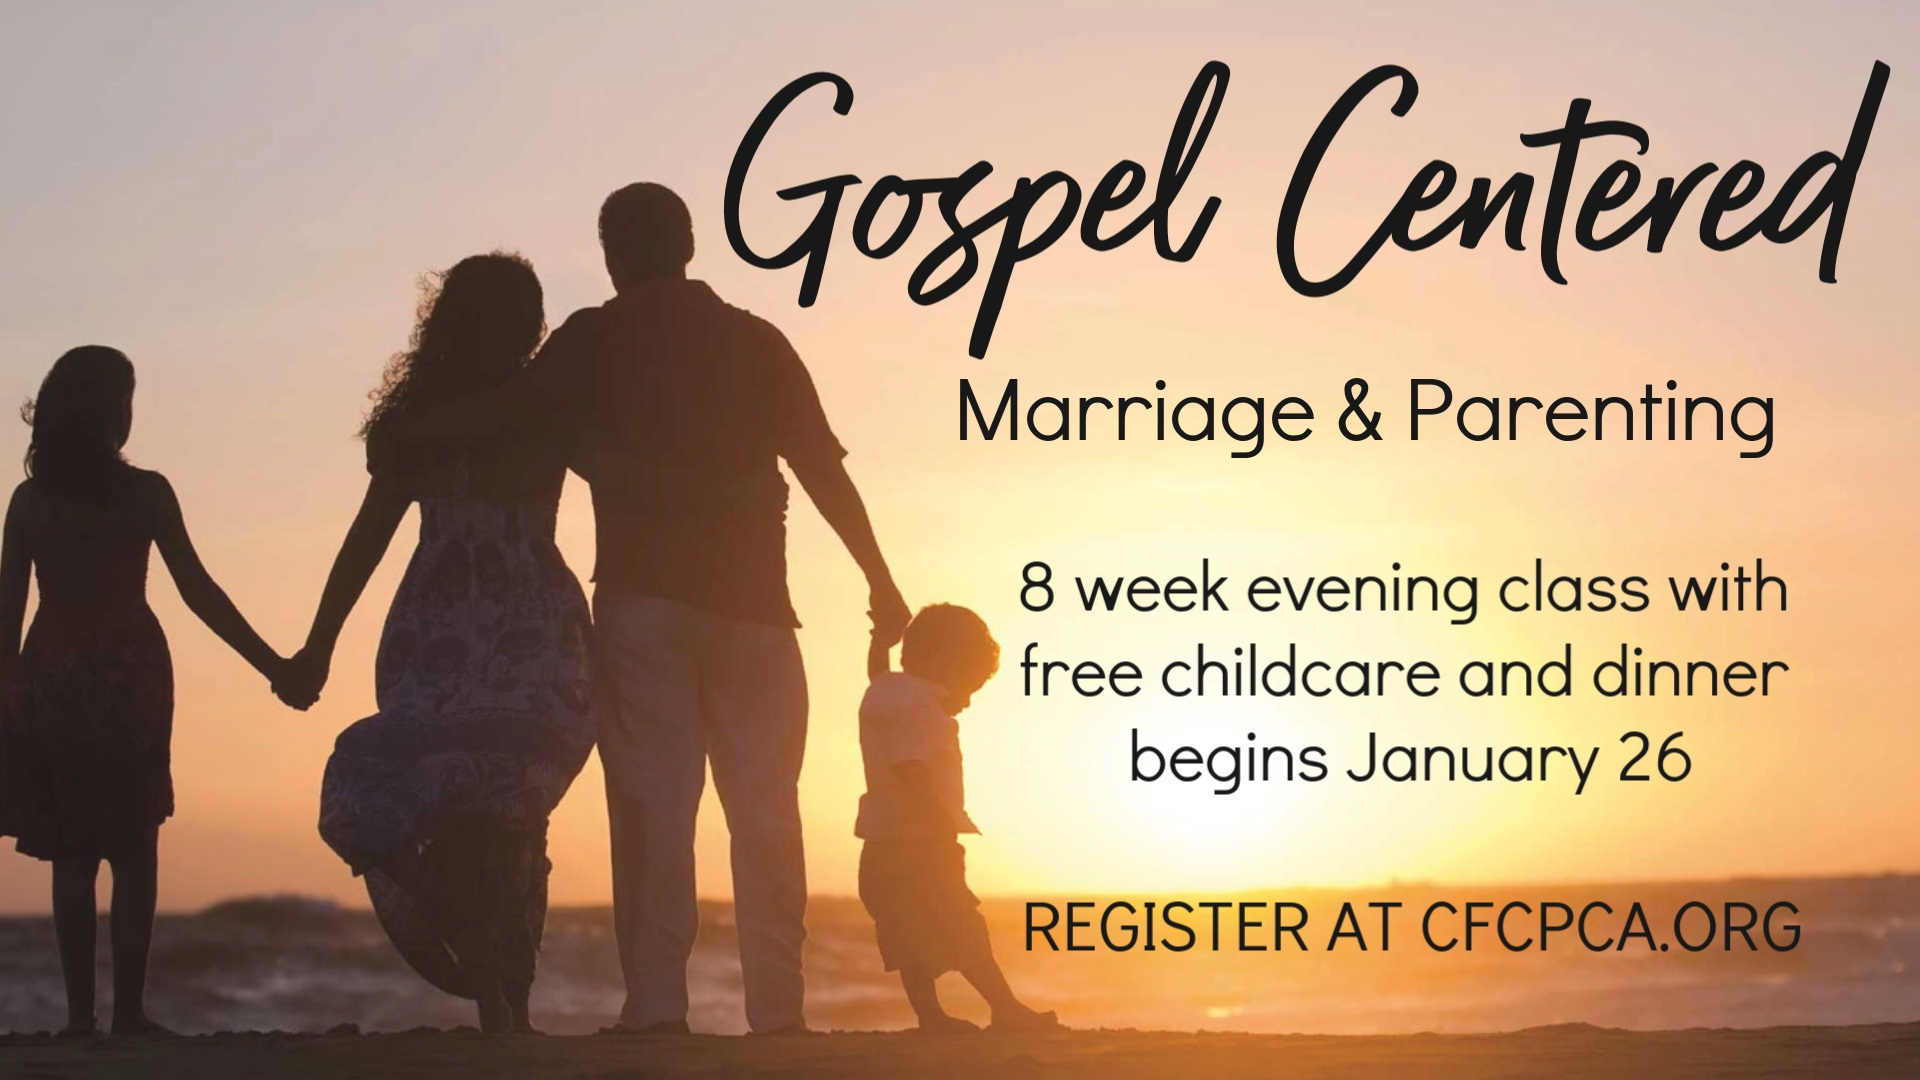 Gospel Marriage Parenting website for details and to register  1920 x 1080